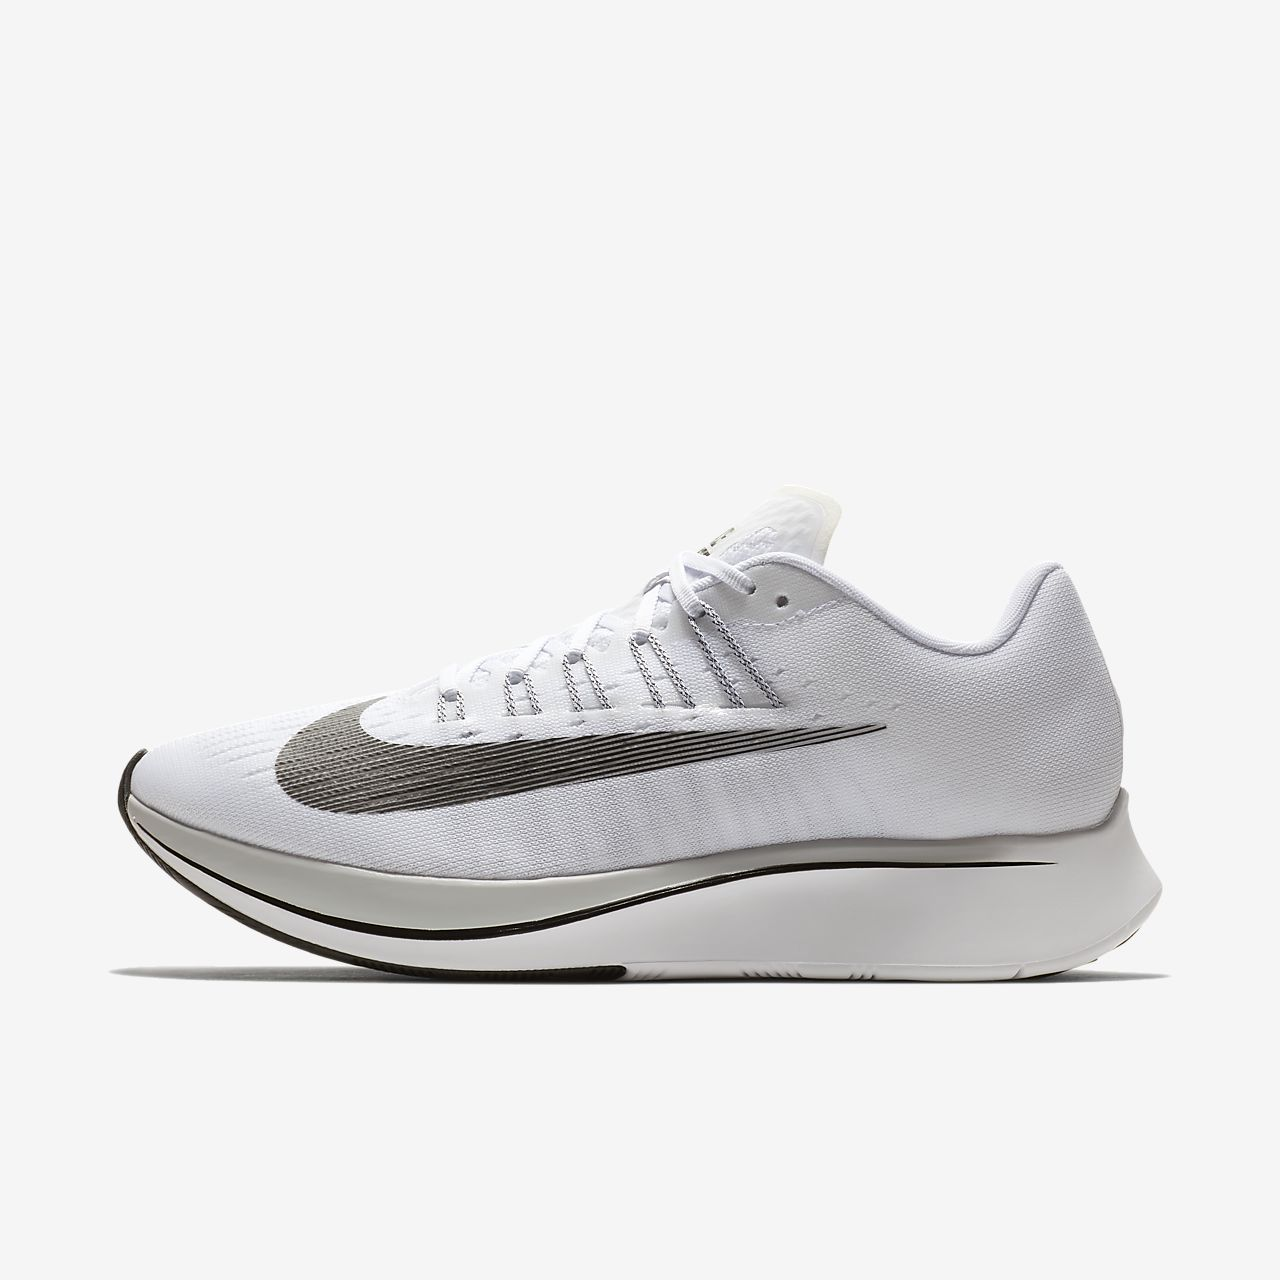 ccbb5794e67b Nike Zoom Fly Men s Running Shoe. Nike.com